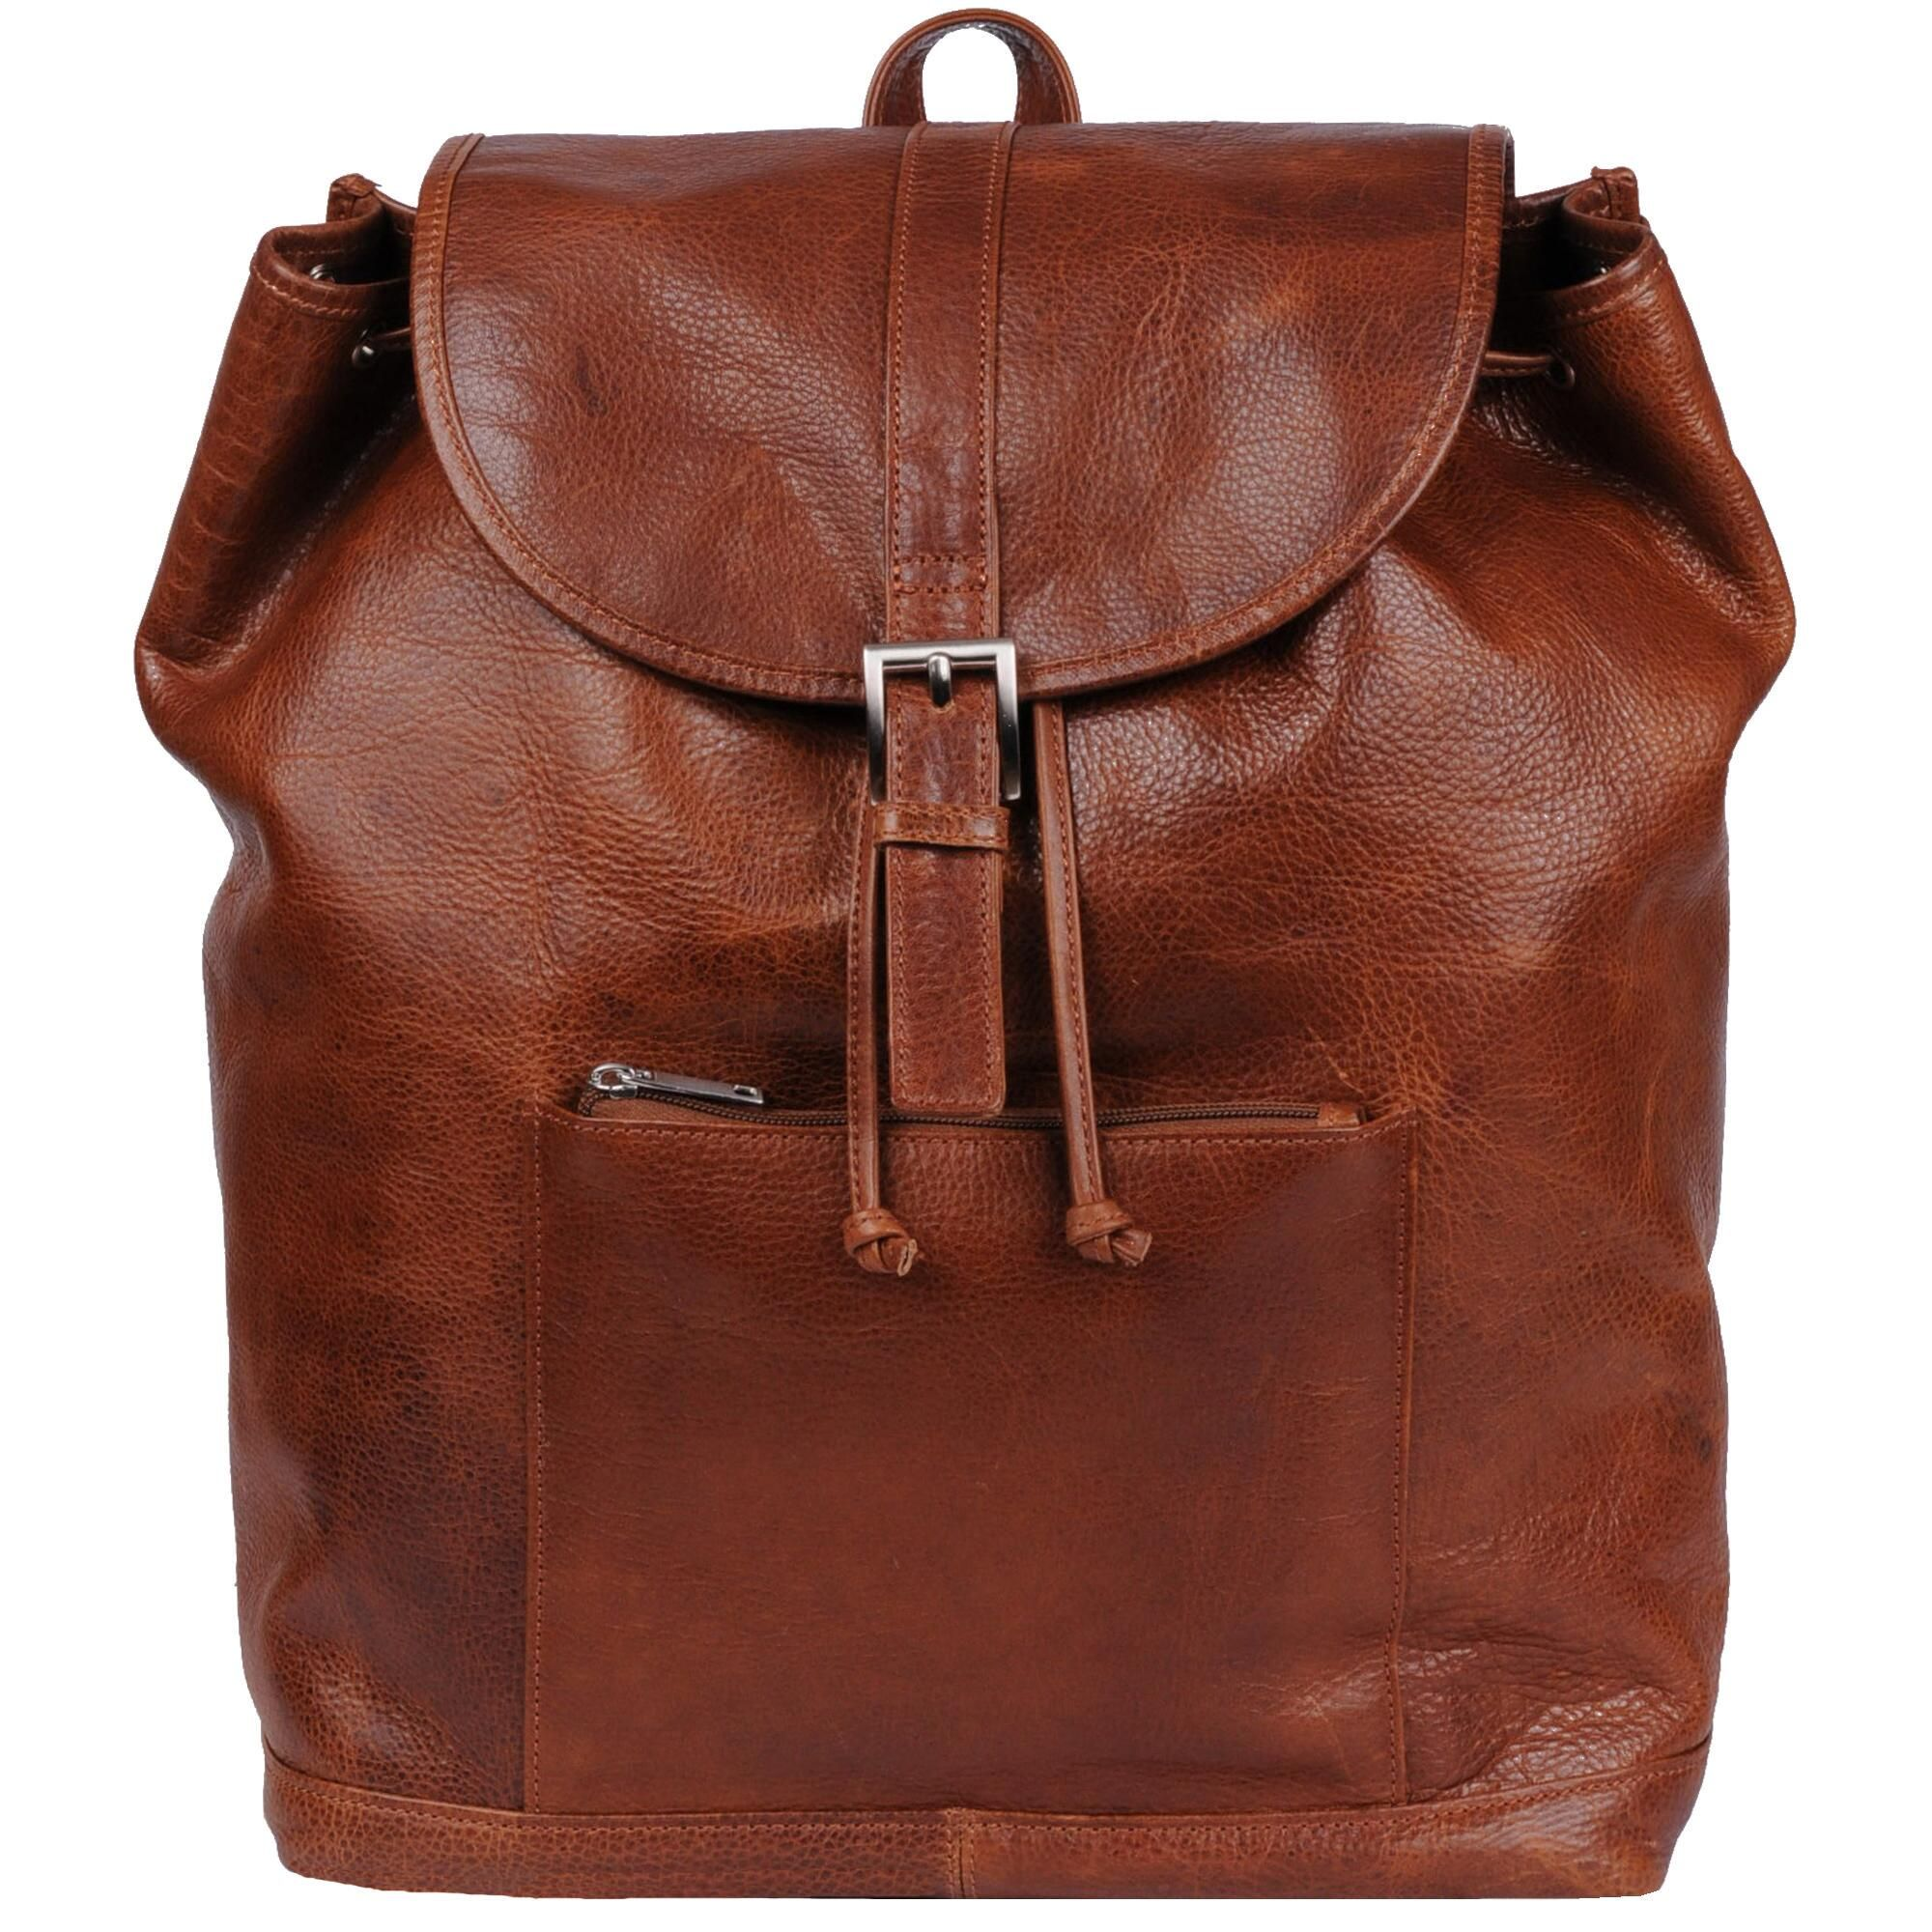 9d880c232cde Wilsons Leather Rugged Leather Backpack